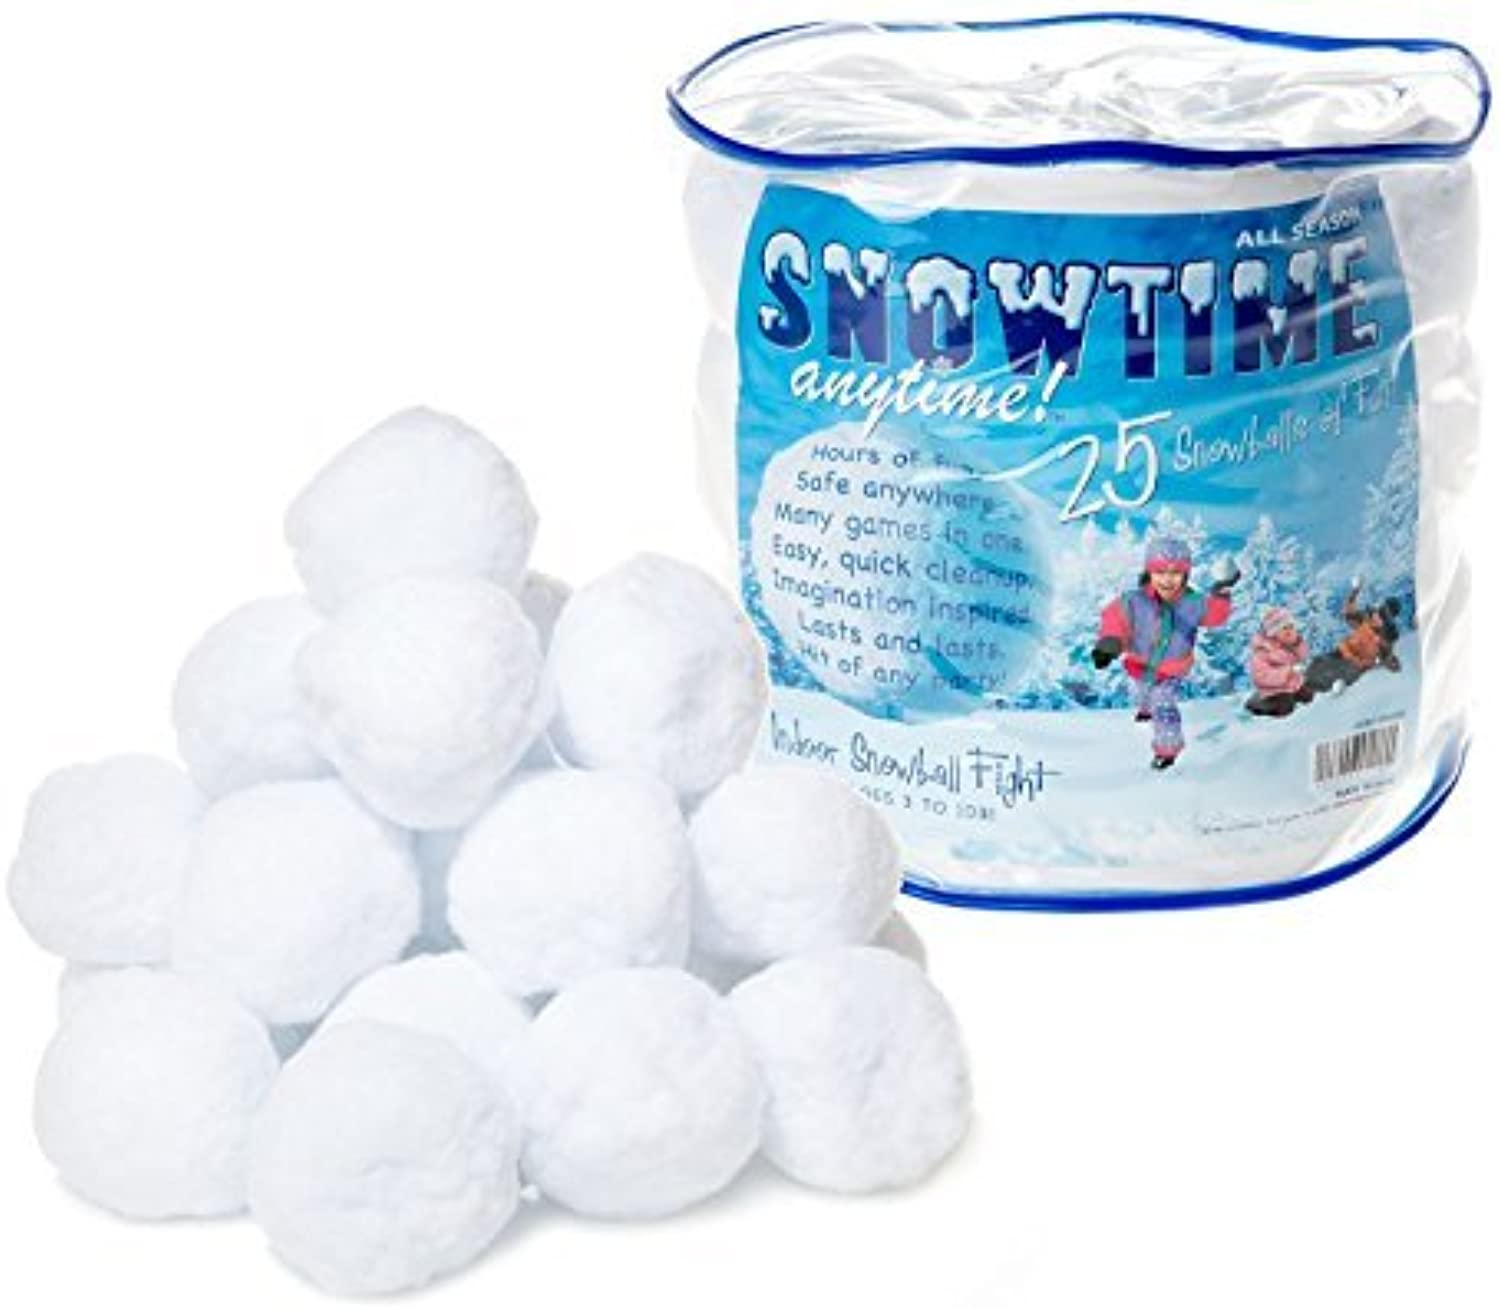 Snowtime Anytime Indoor Snowballs - 25pk by SNOWTIME ANYTIME